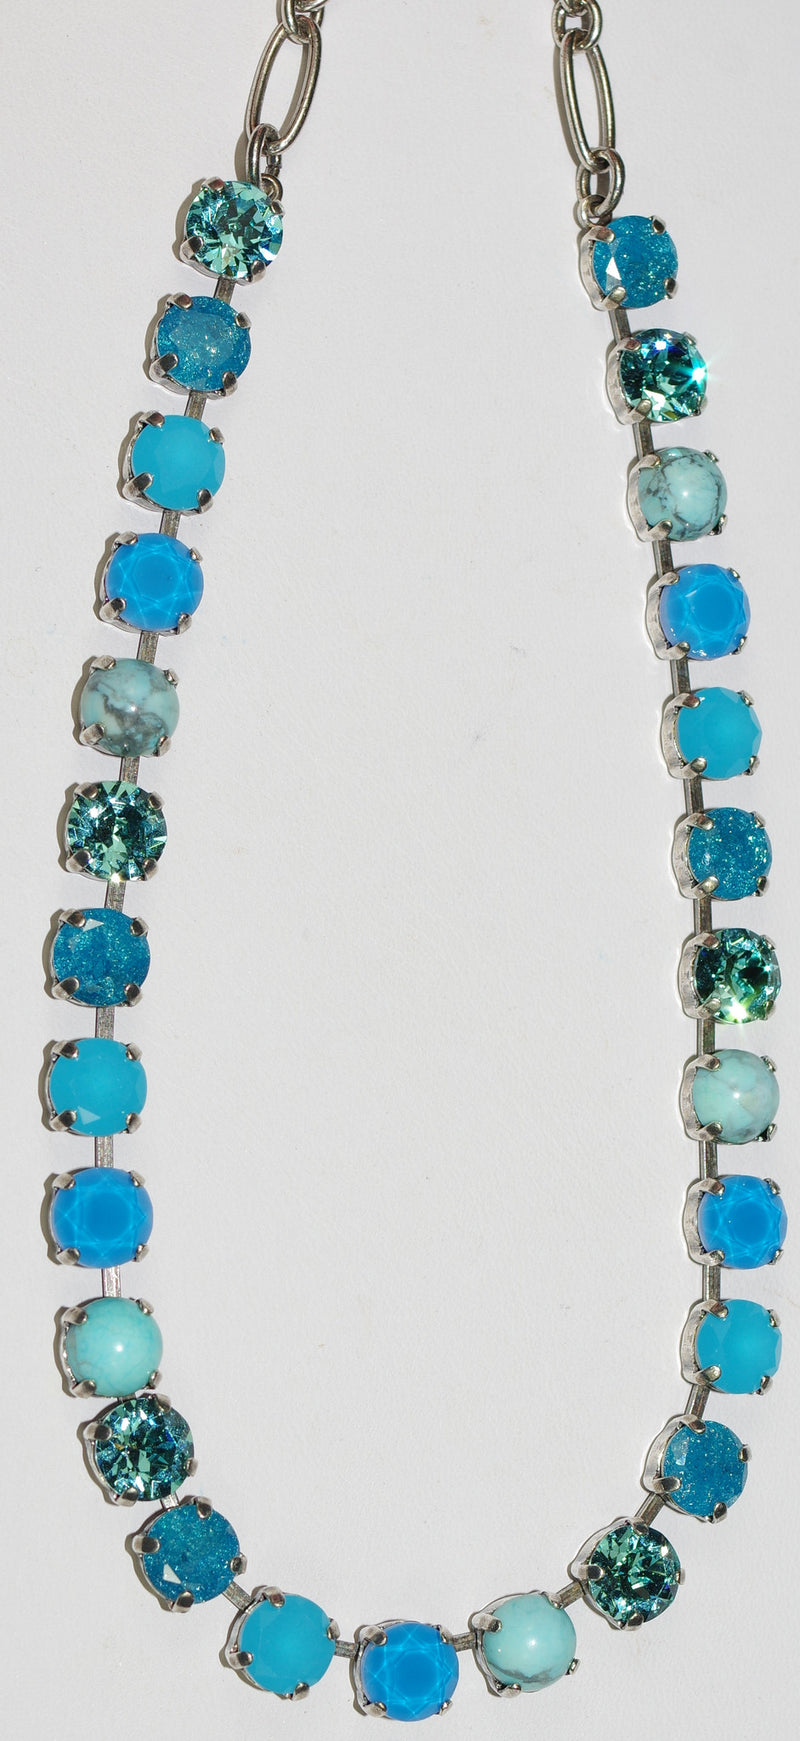 "MARIANA NECKLACE BETTE ZAMBEZI: blue, mineral stones in silver setting, 18"" adjustable chain"